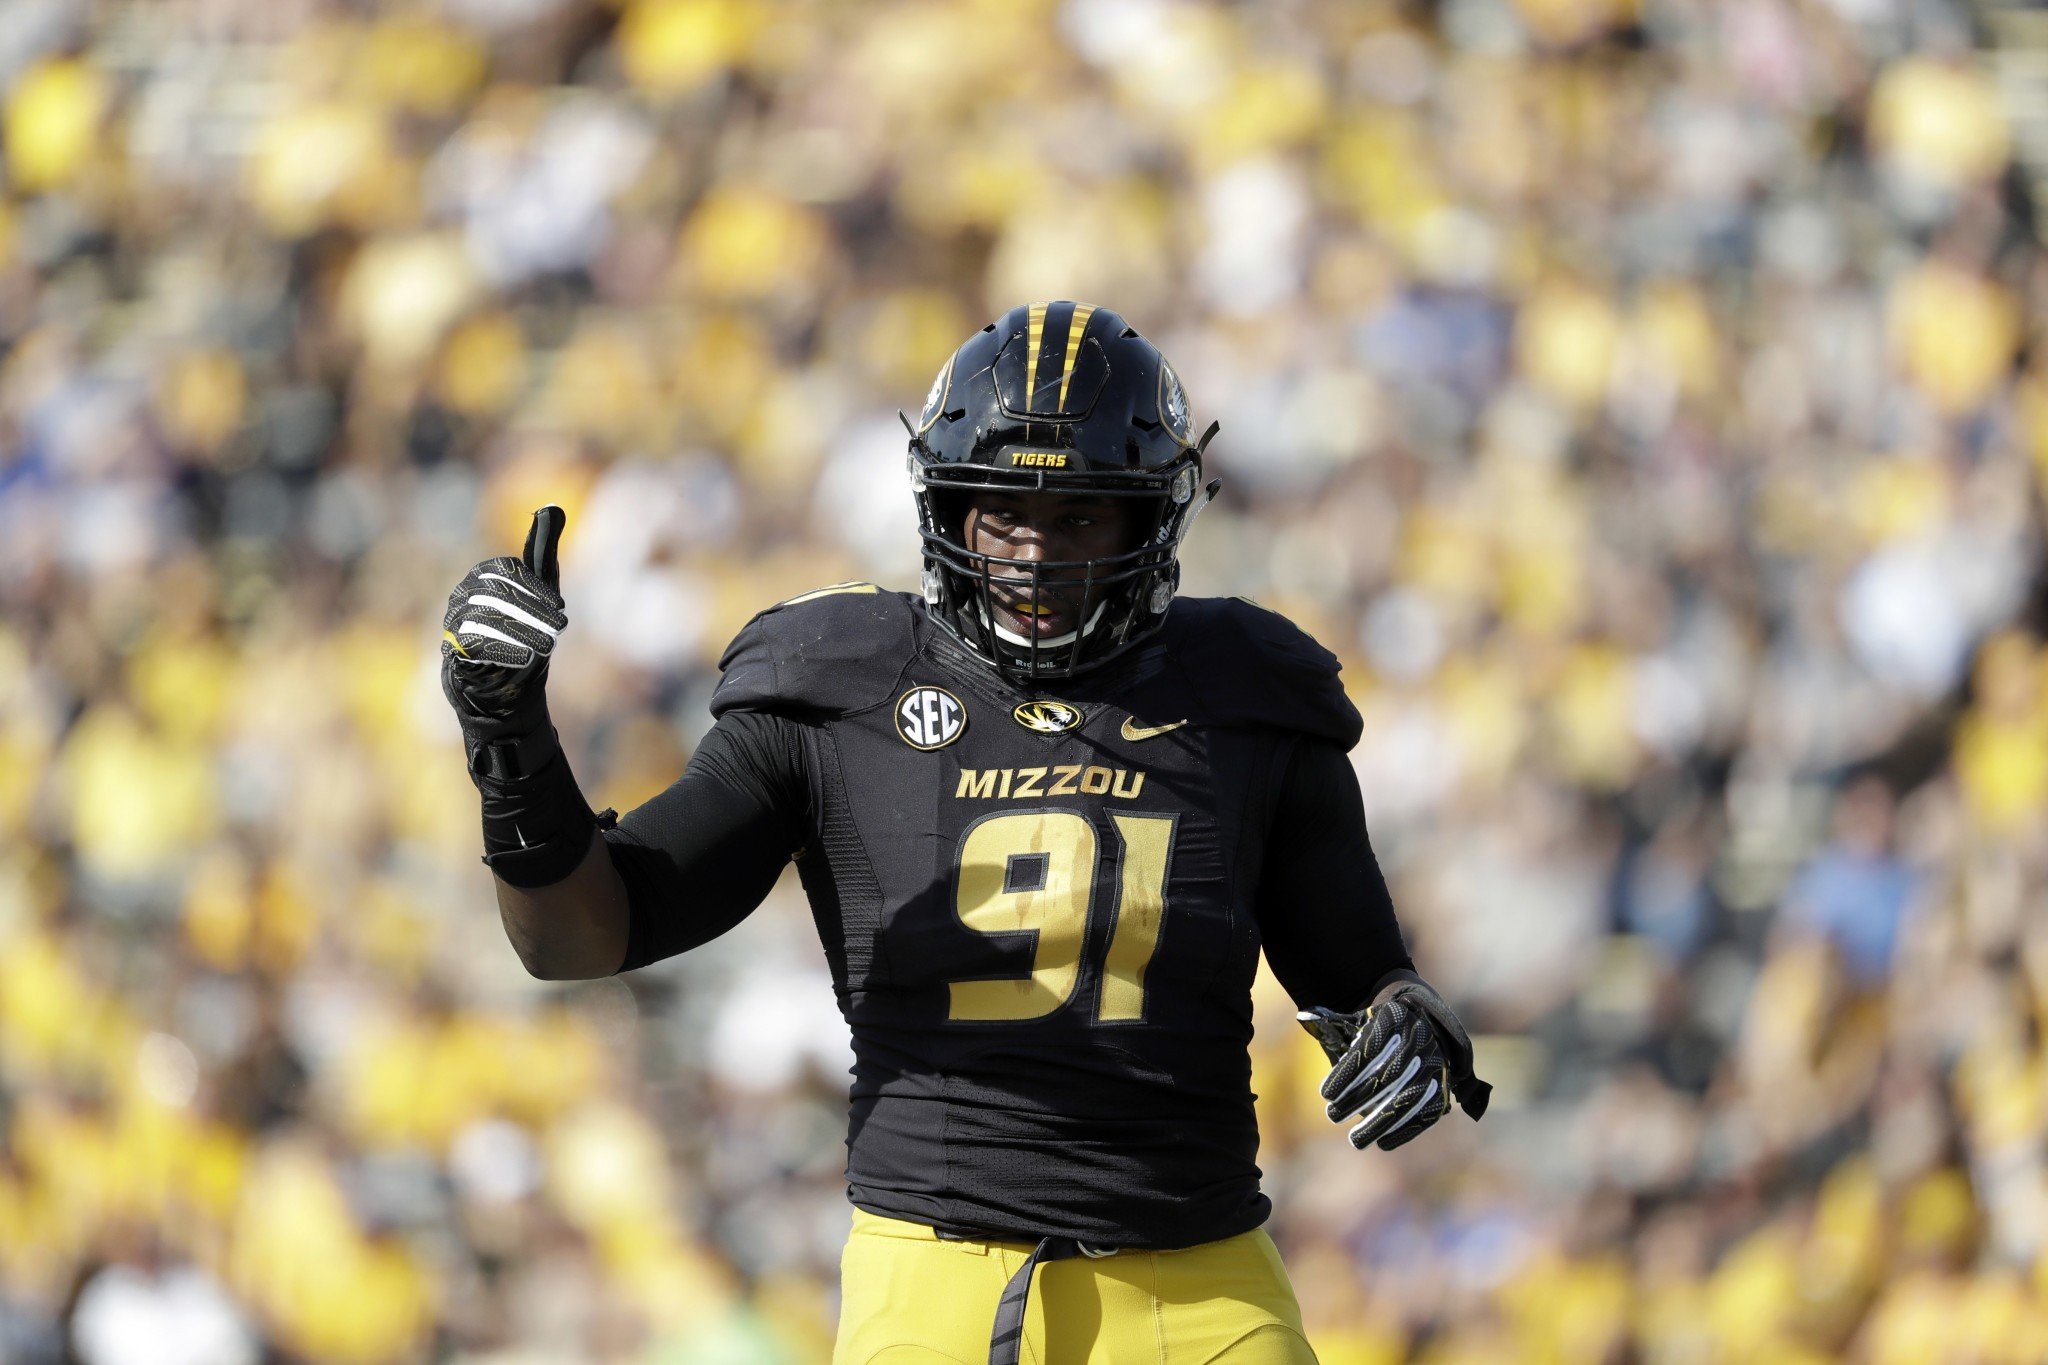 Charles Harris combined for 117 tackles, 30.5 tackles for loss and 16 sacks over the last two seasons at Missouri. (AP Photo/Jeff Roberson)